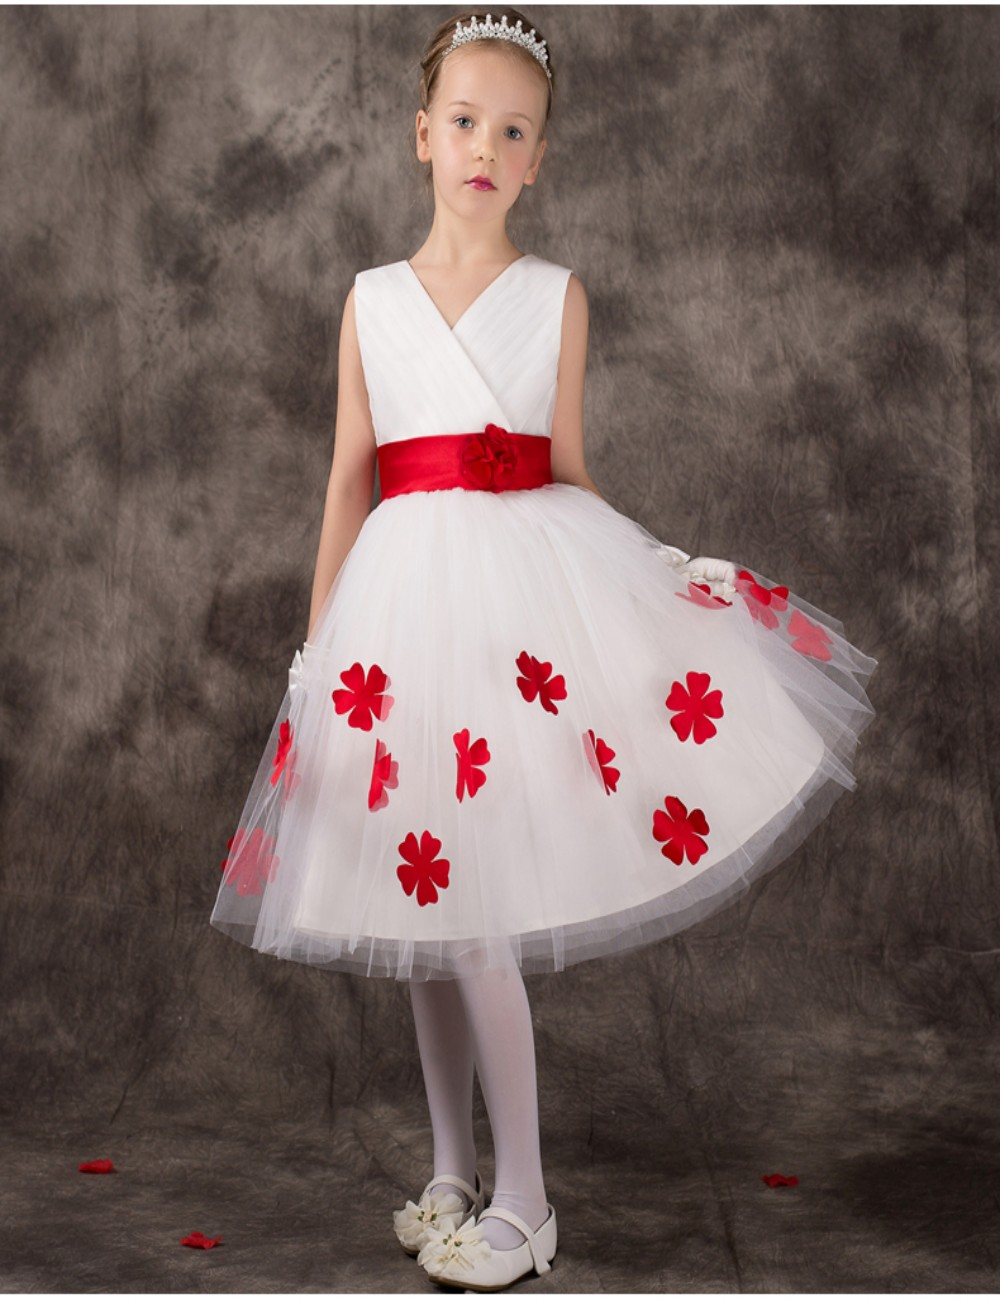 Red and white flower girl dresses uk junoir bridesmaid dresses 2015 cute red white flower girls dress bow sash kids beauty pageant dresses knee length littleg izmirmasajfo